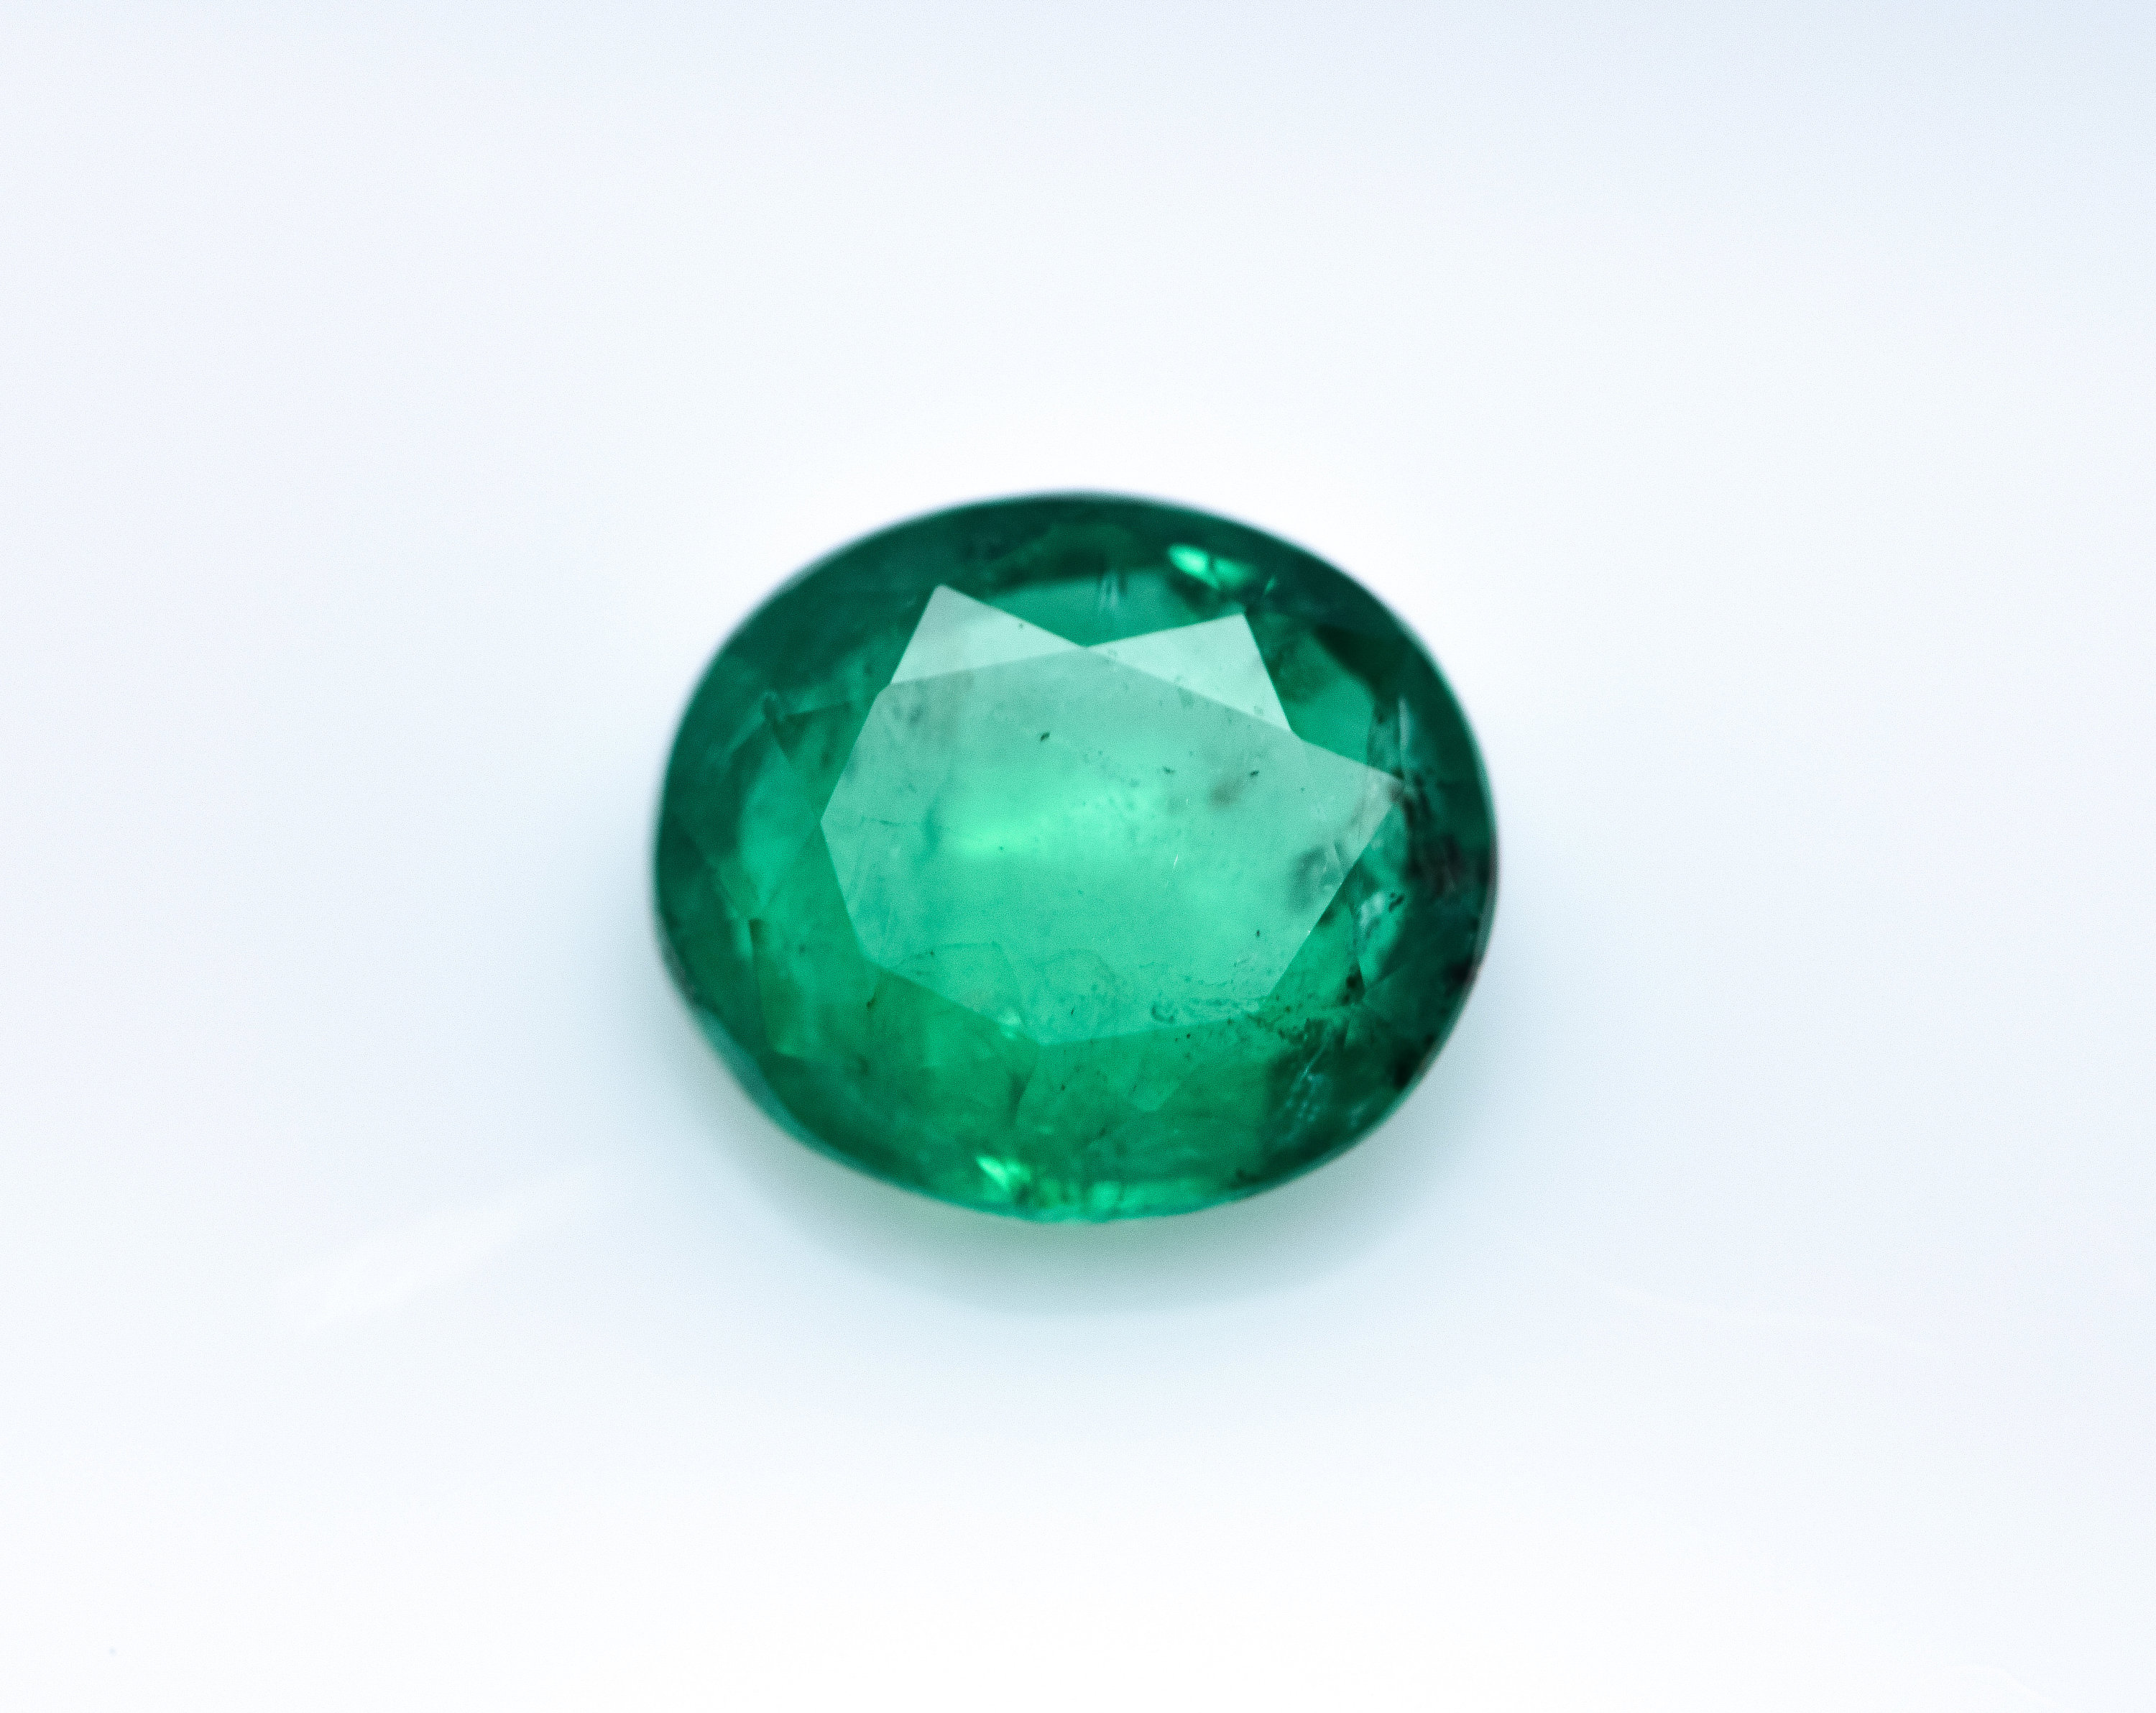 #Natural Green Emerald Loose Gemstone -5.0 ct IGI Certified - oil only